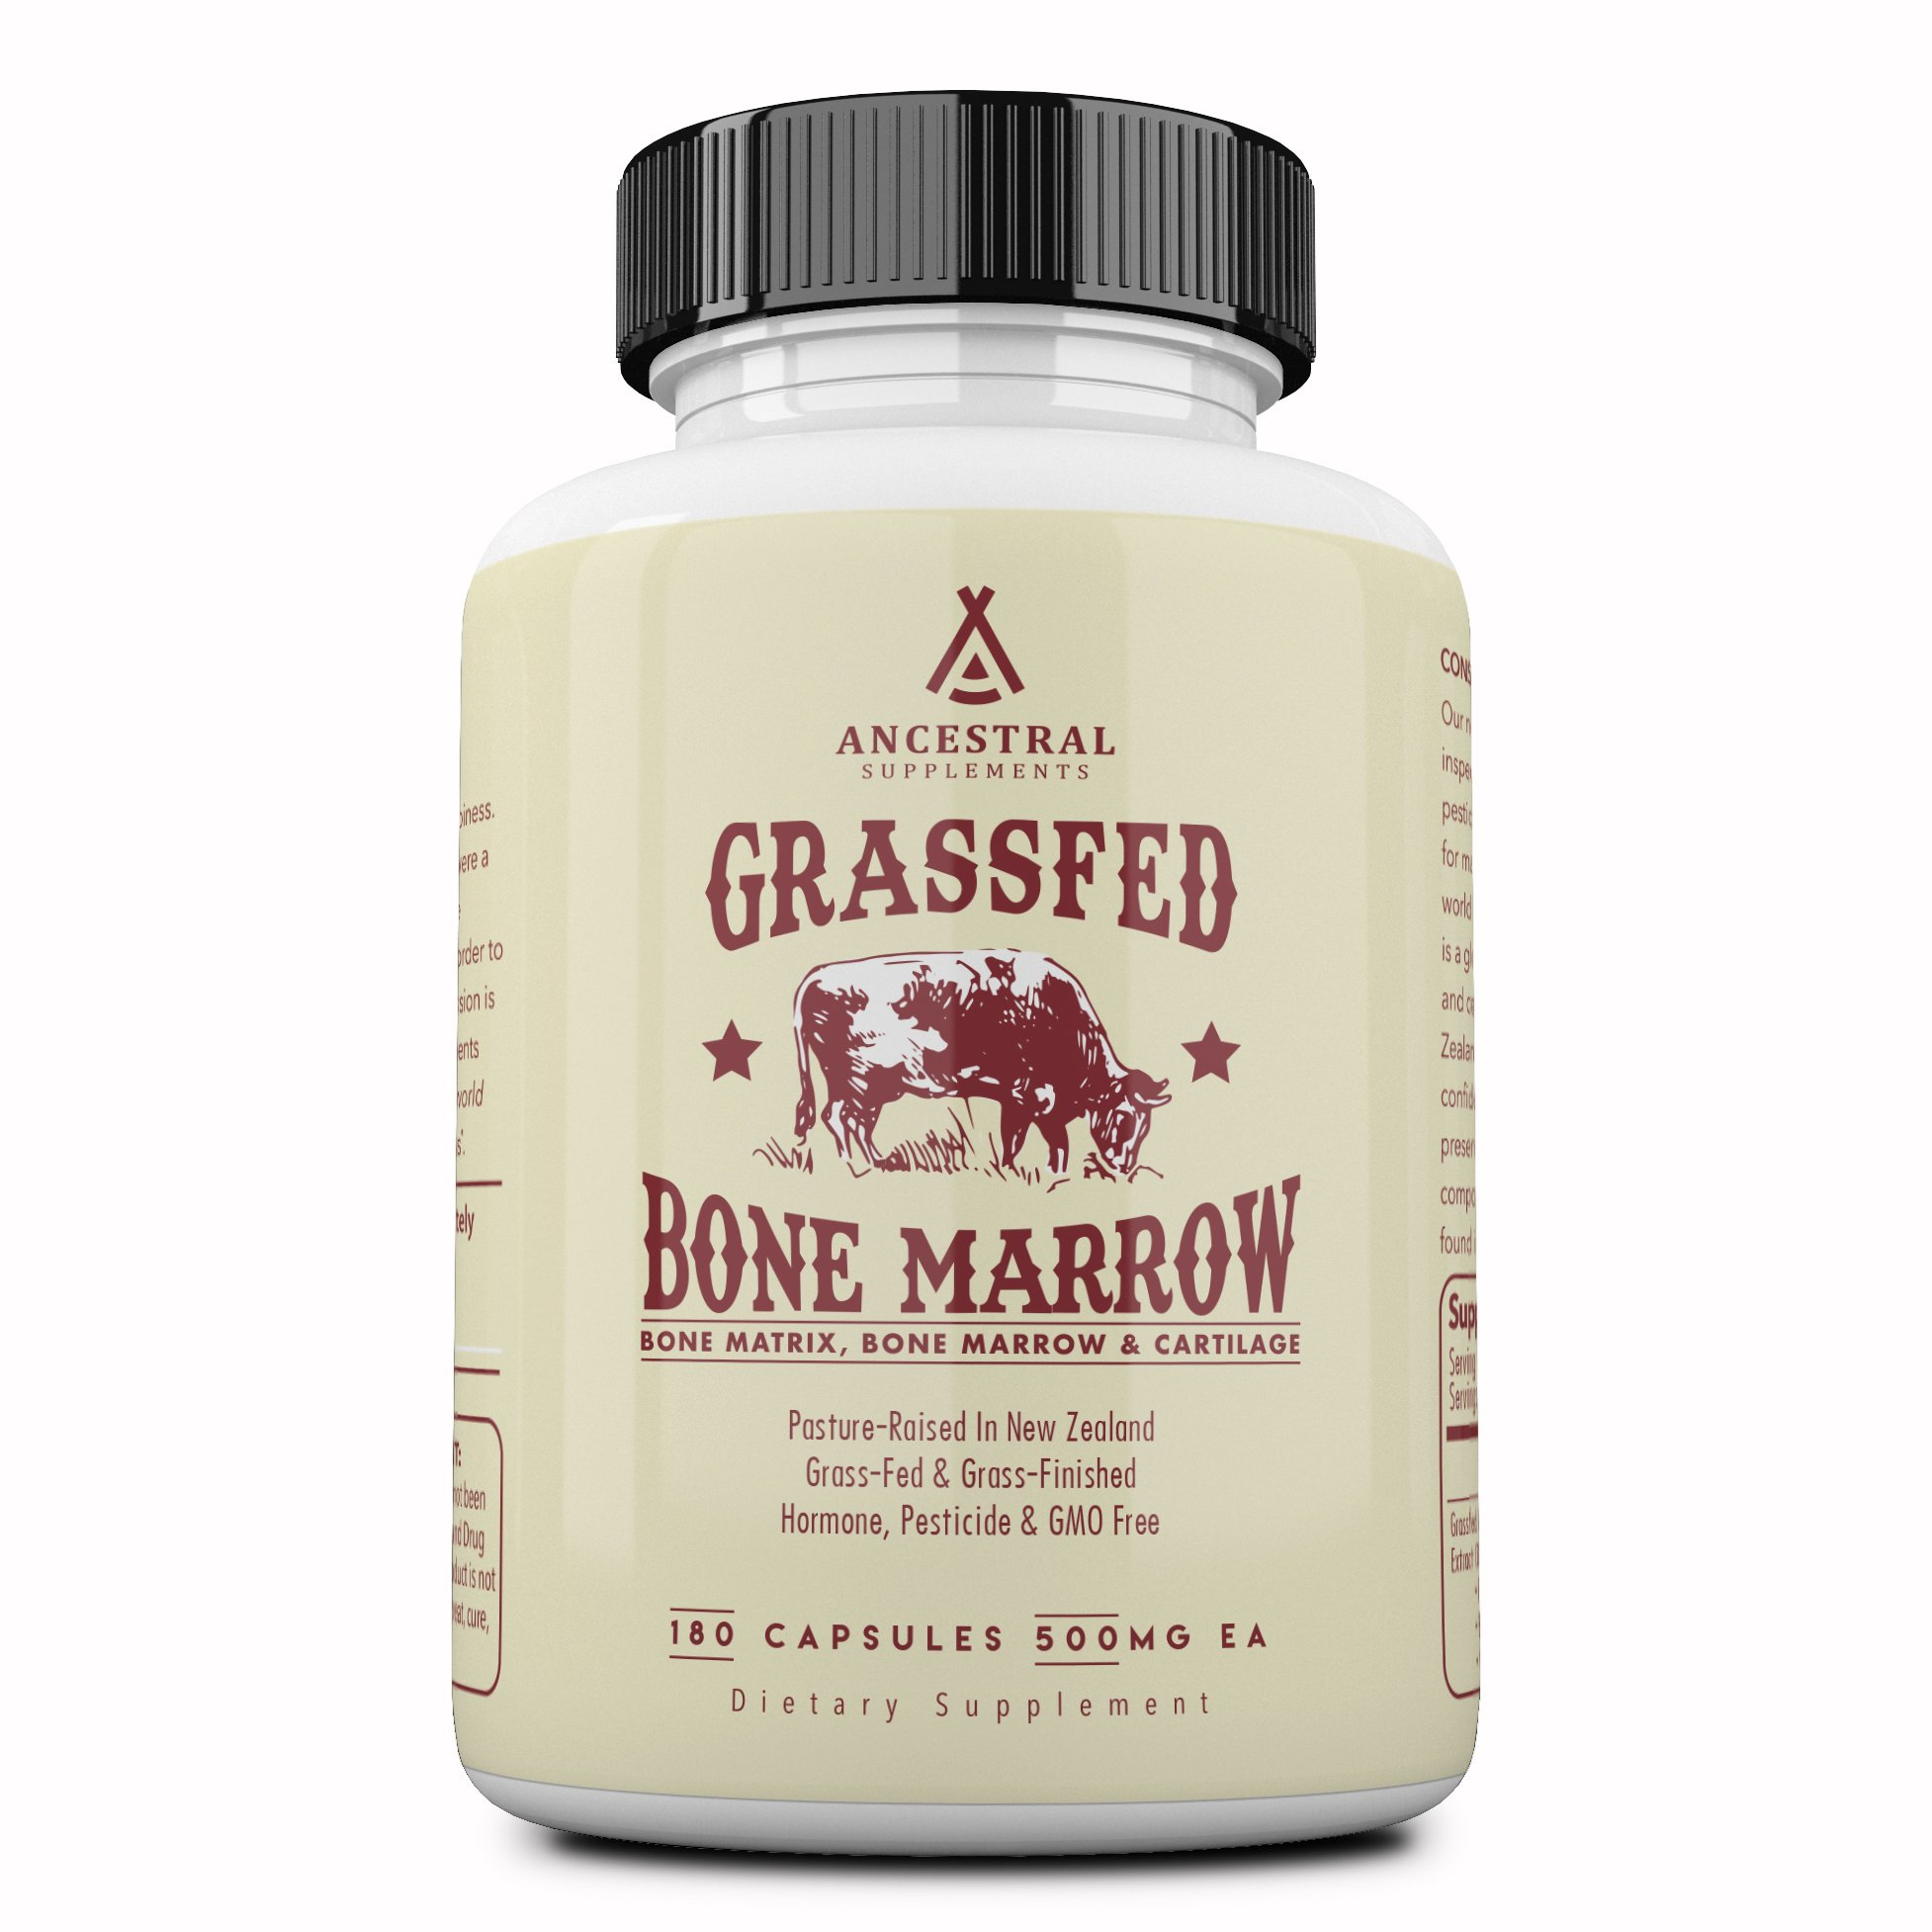 Ancestral Supplements Grass Fed Bone Marrow - Whole Bone Extract (Bone, Marrow, Cartilage, Collagen). See Other Ingredients.